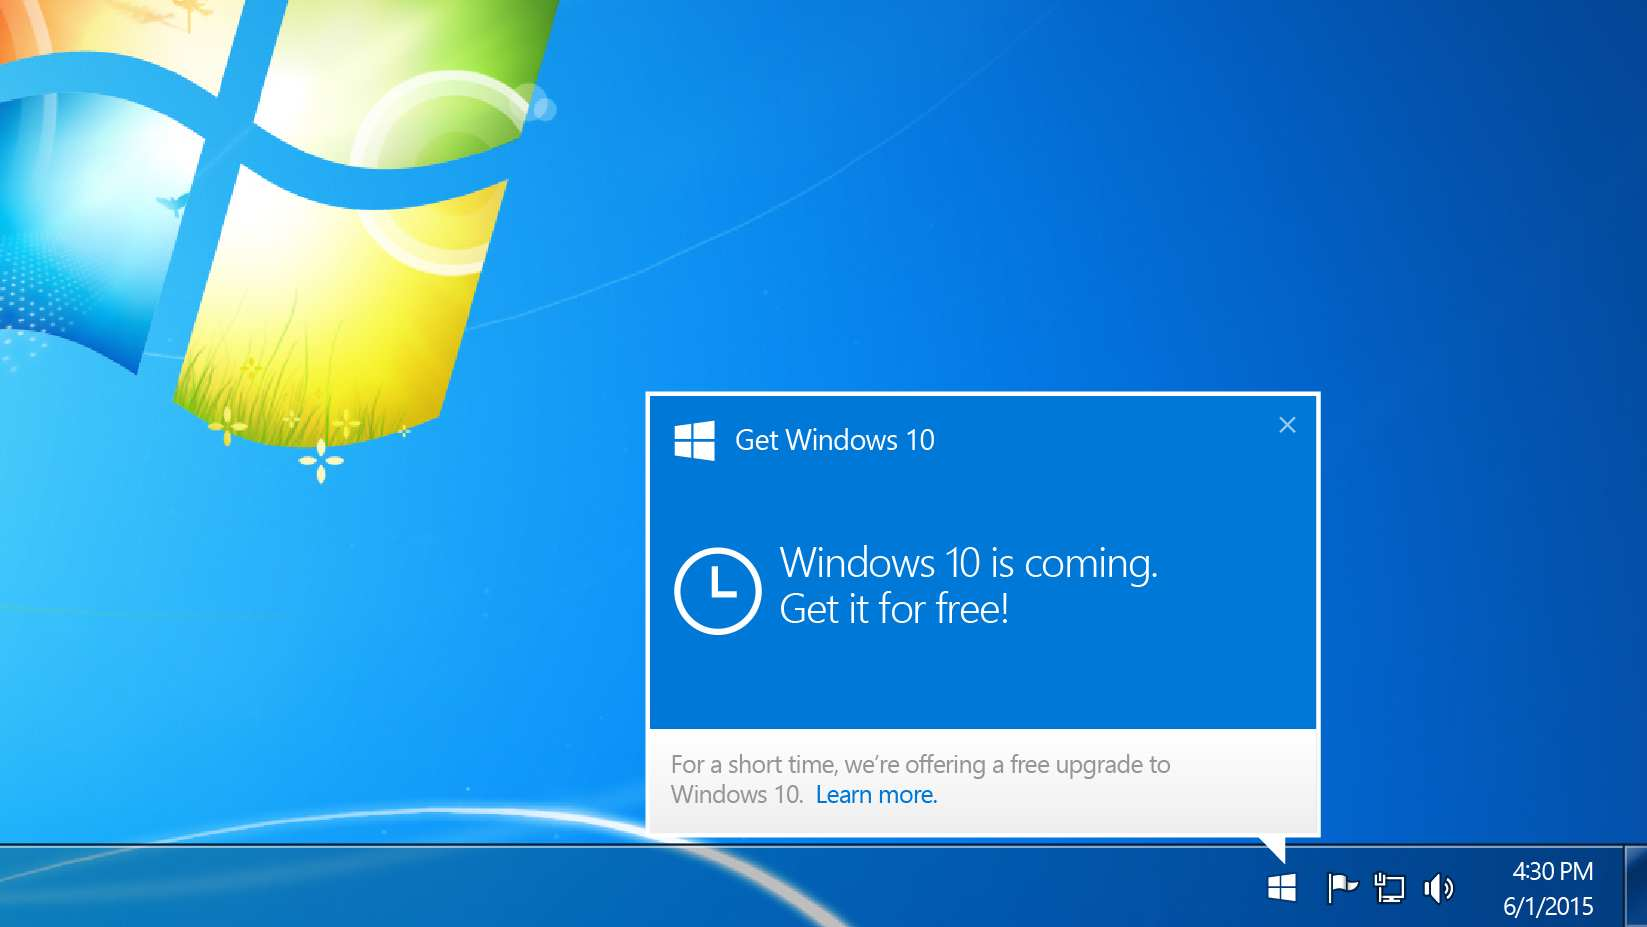 get-windows-10-app